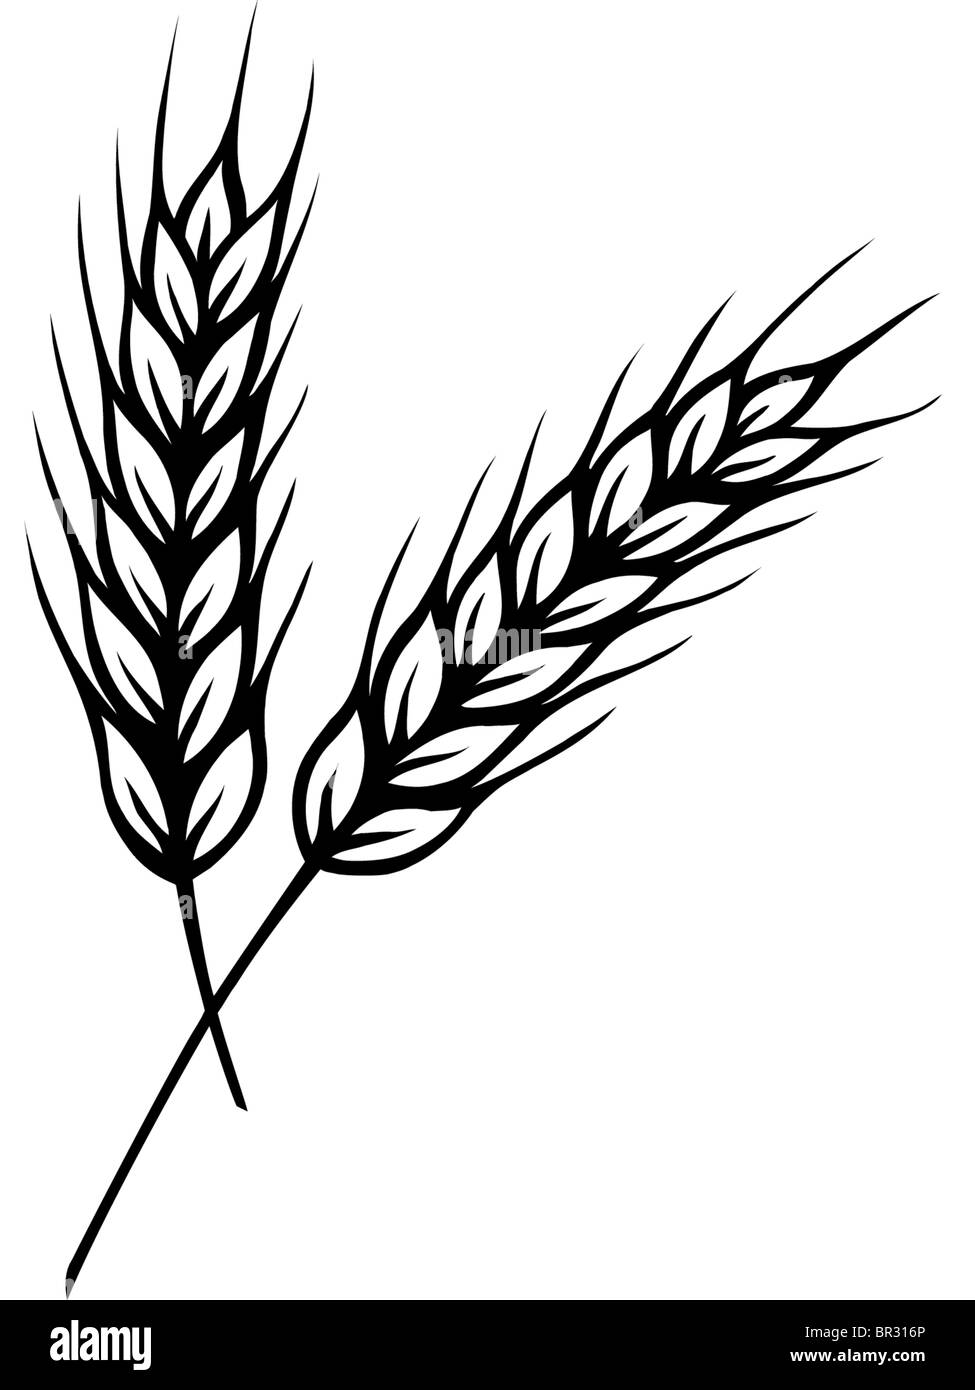 a black and white drawing of two stalks of wheat stock